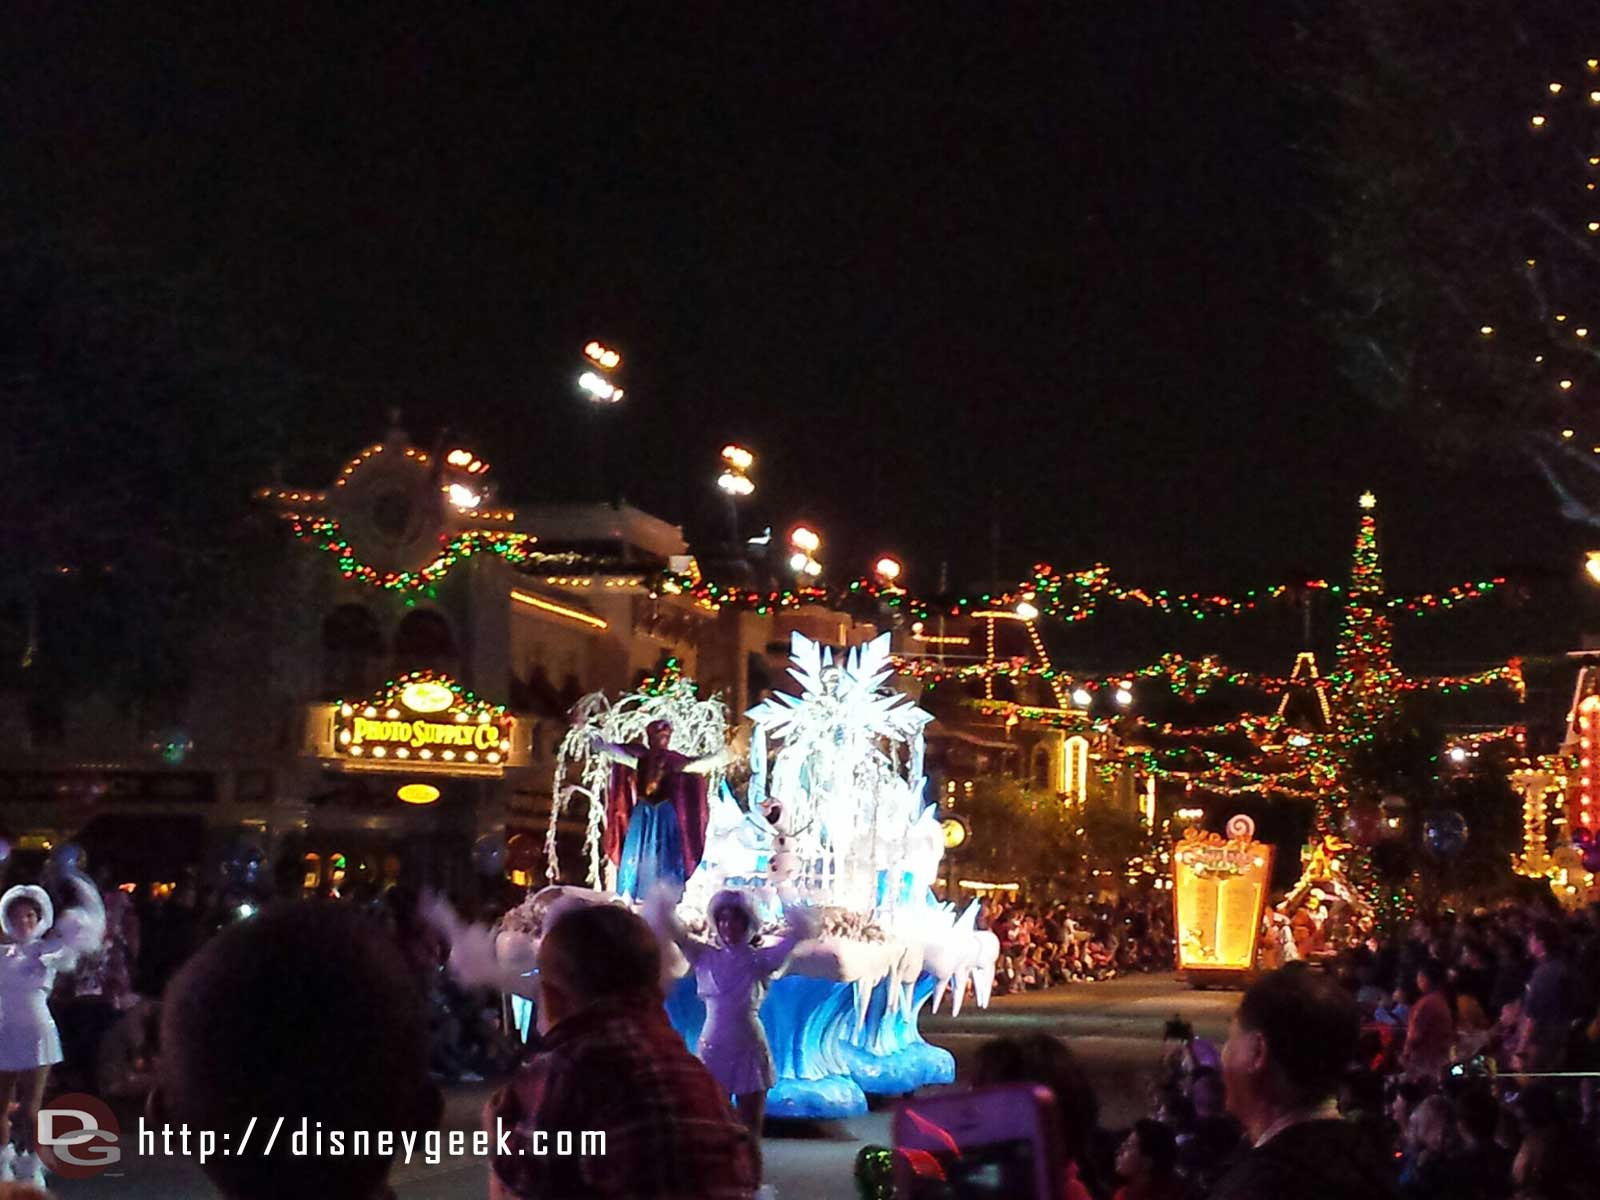 The #Frozen float moving up Main Street USA in A Christmas Fantasy Parade #Disneyland